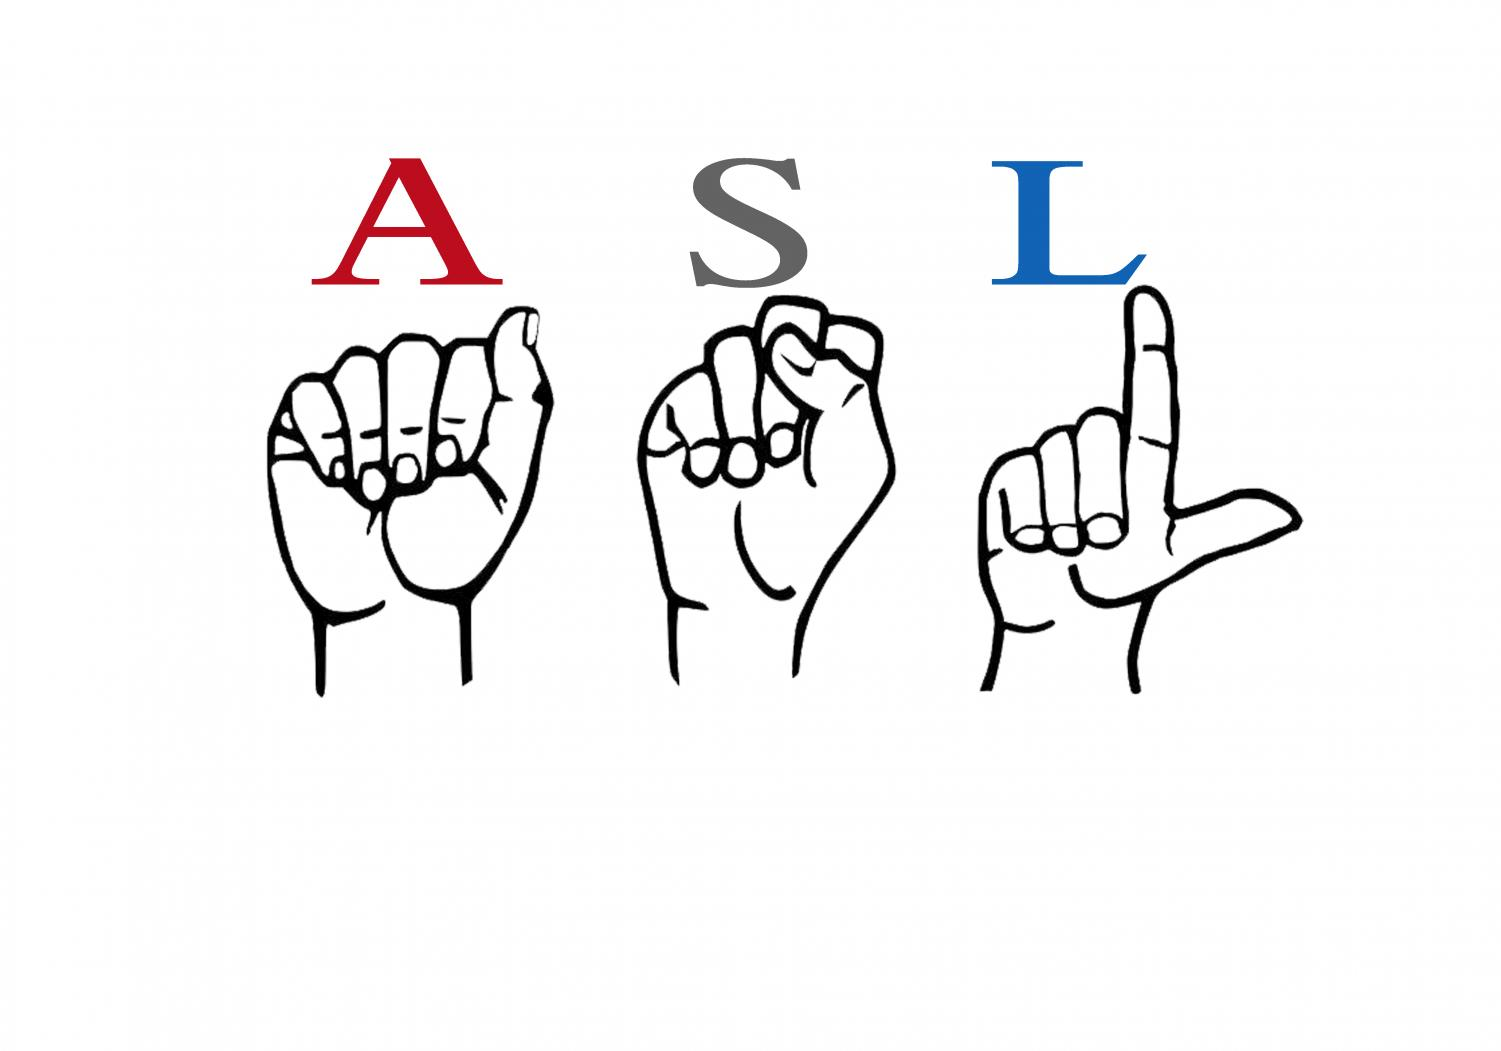 American Sign Language has multiple forms of communication. Using ASL, people can either spell out words or use phrases or shortened words for simple communication.